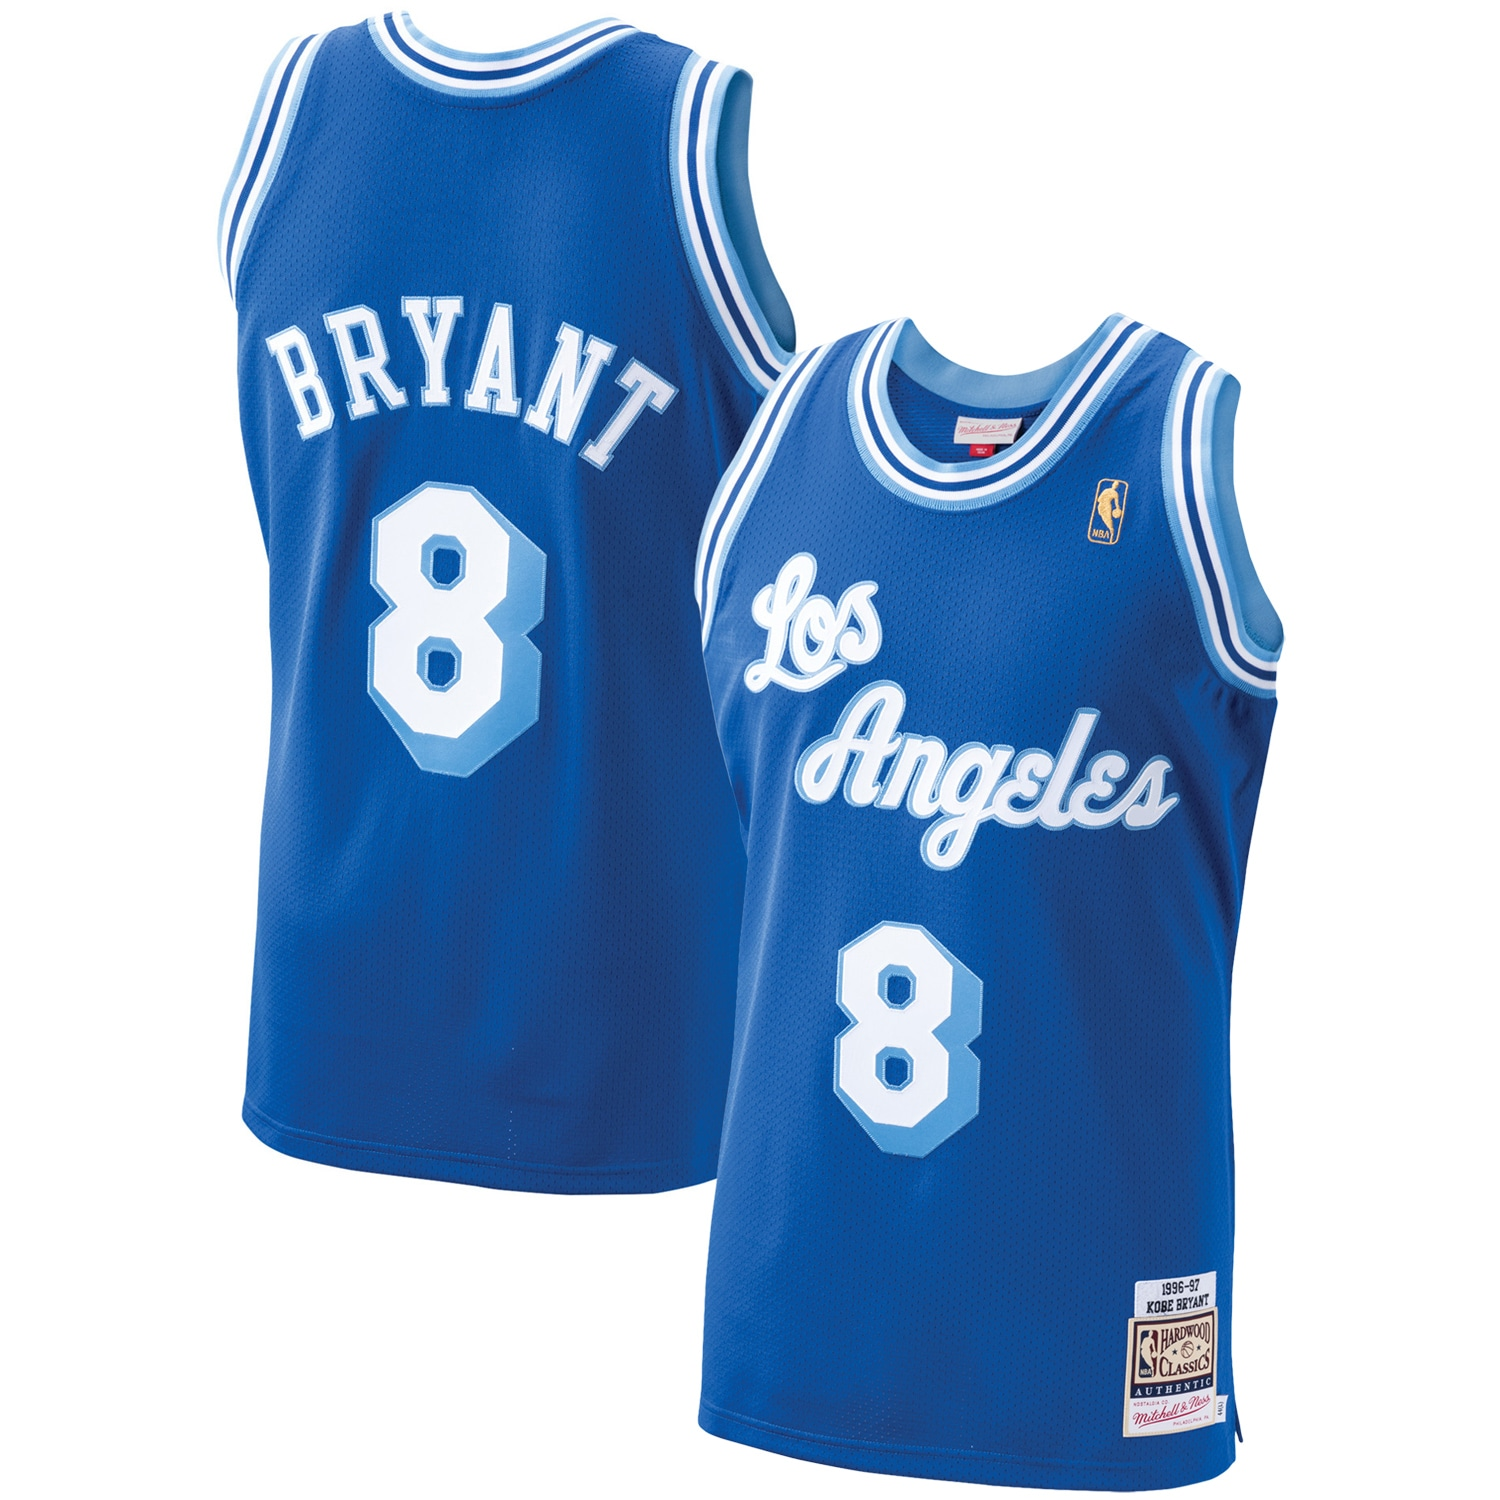 Kobe Bryant Los Angeles Lakers Mitchell & Ness 1996-97 Hardwood Classics Authentic Player Jersey - Royal